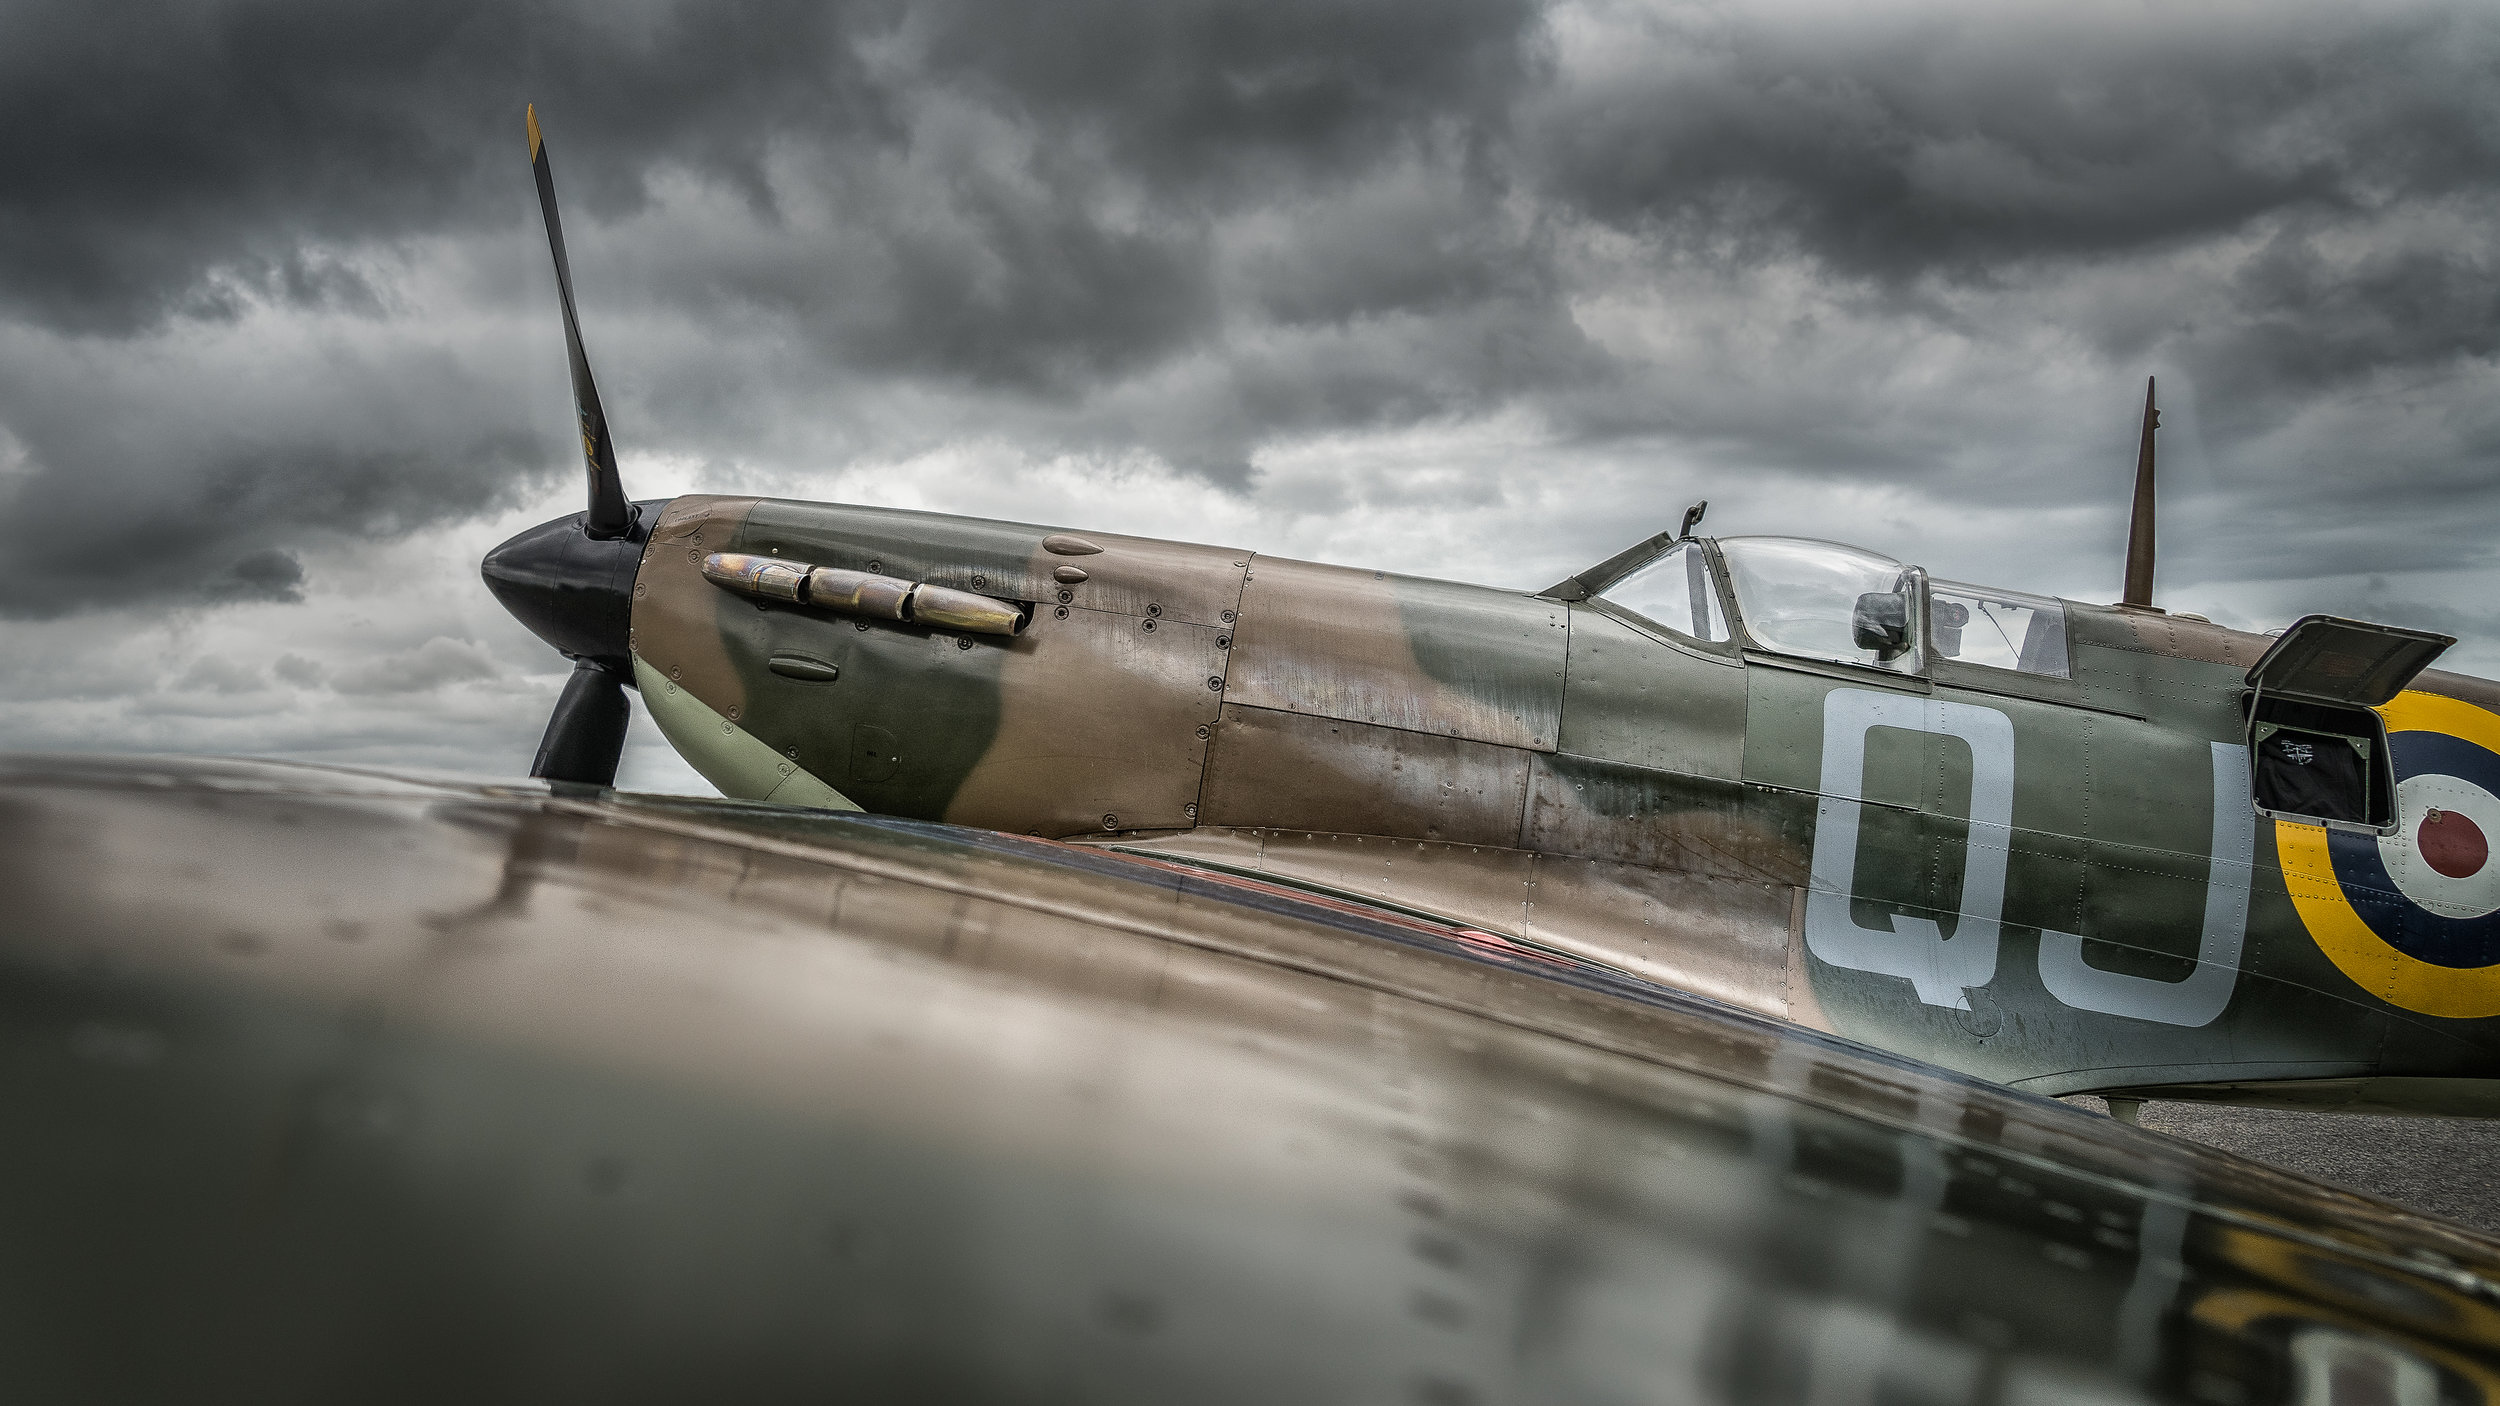 A Spitfire at Bournemouth airport.